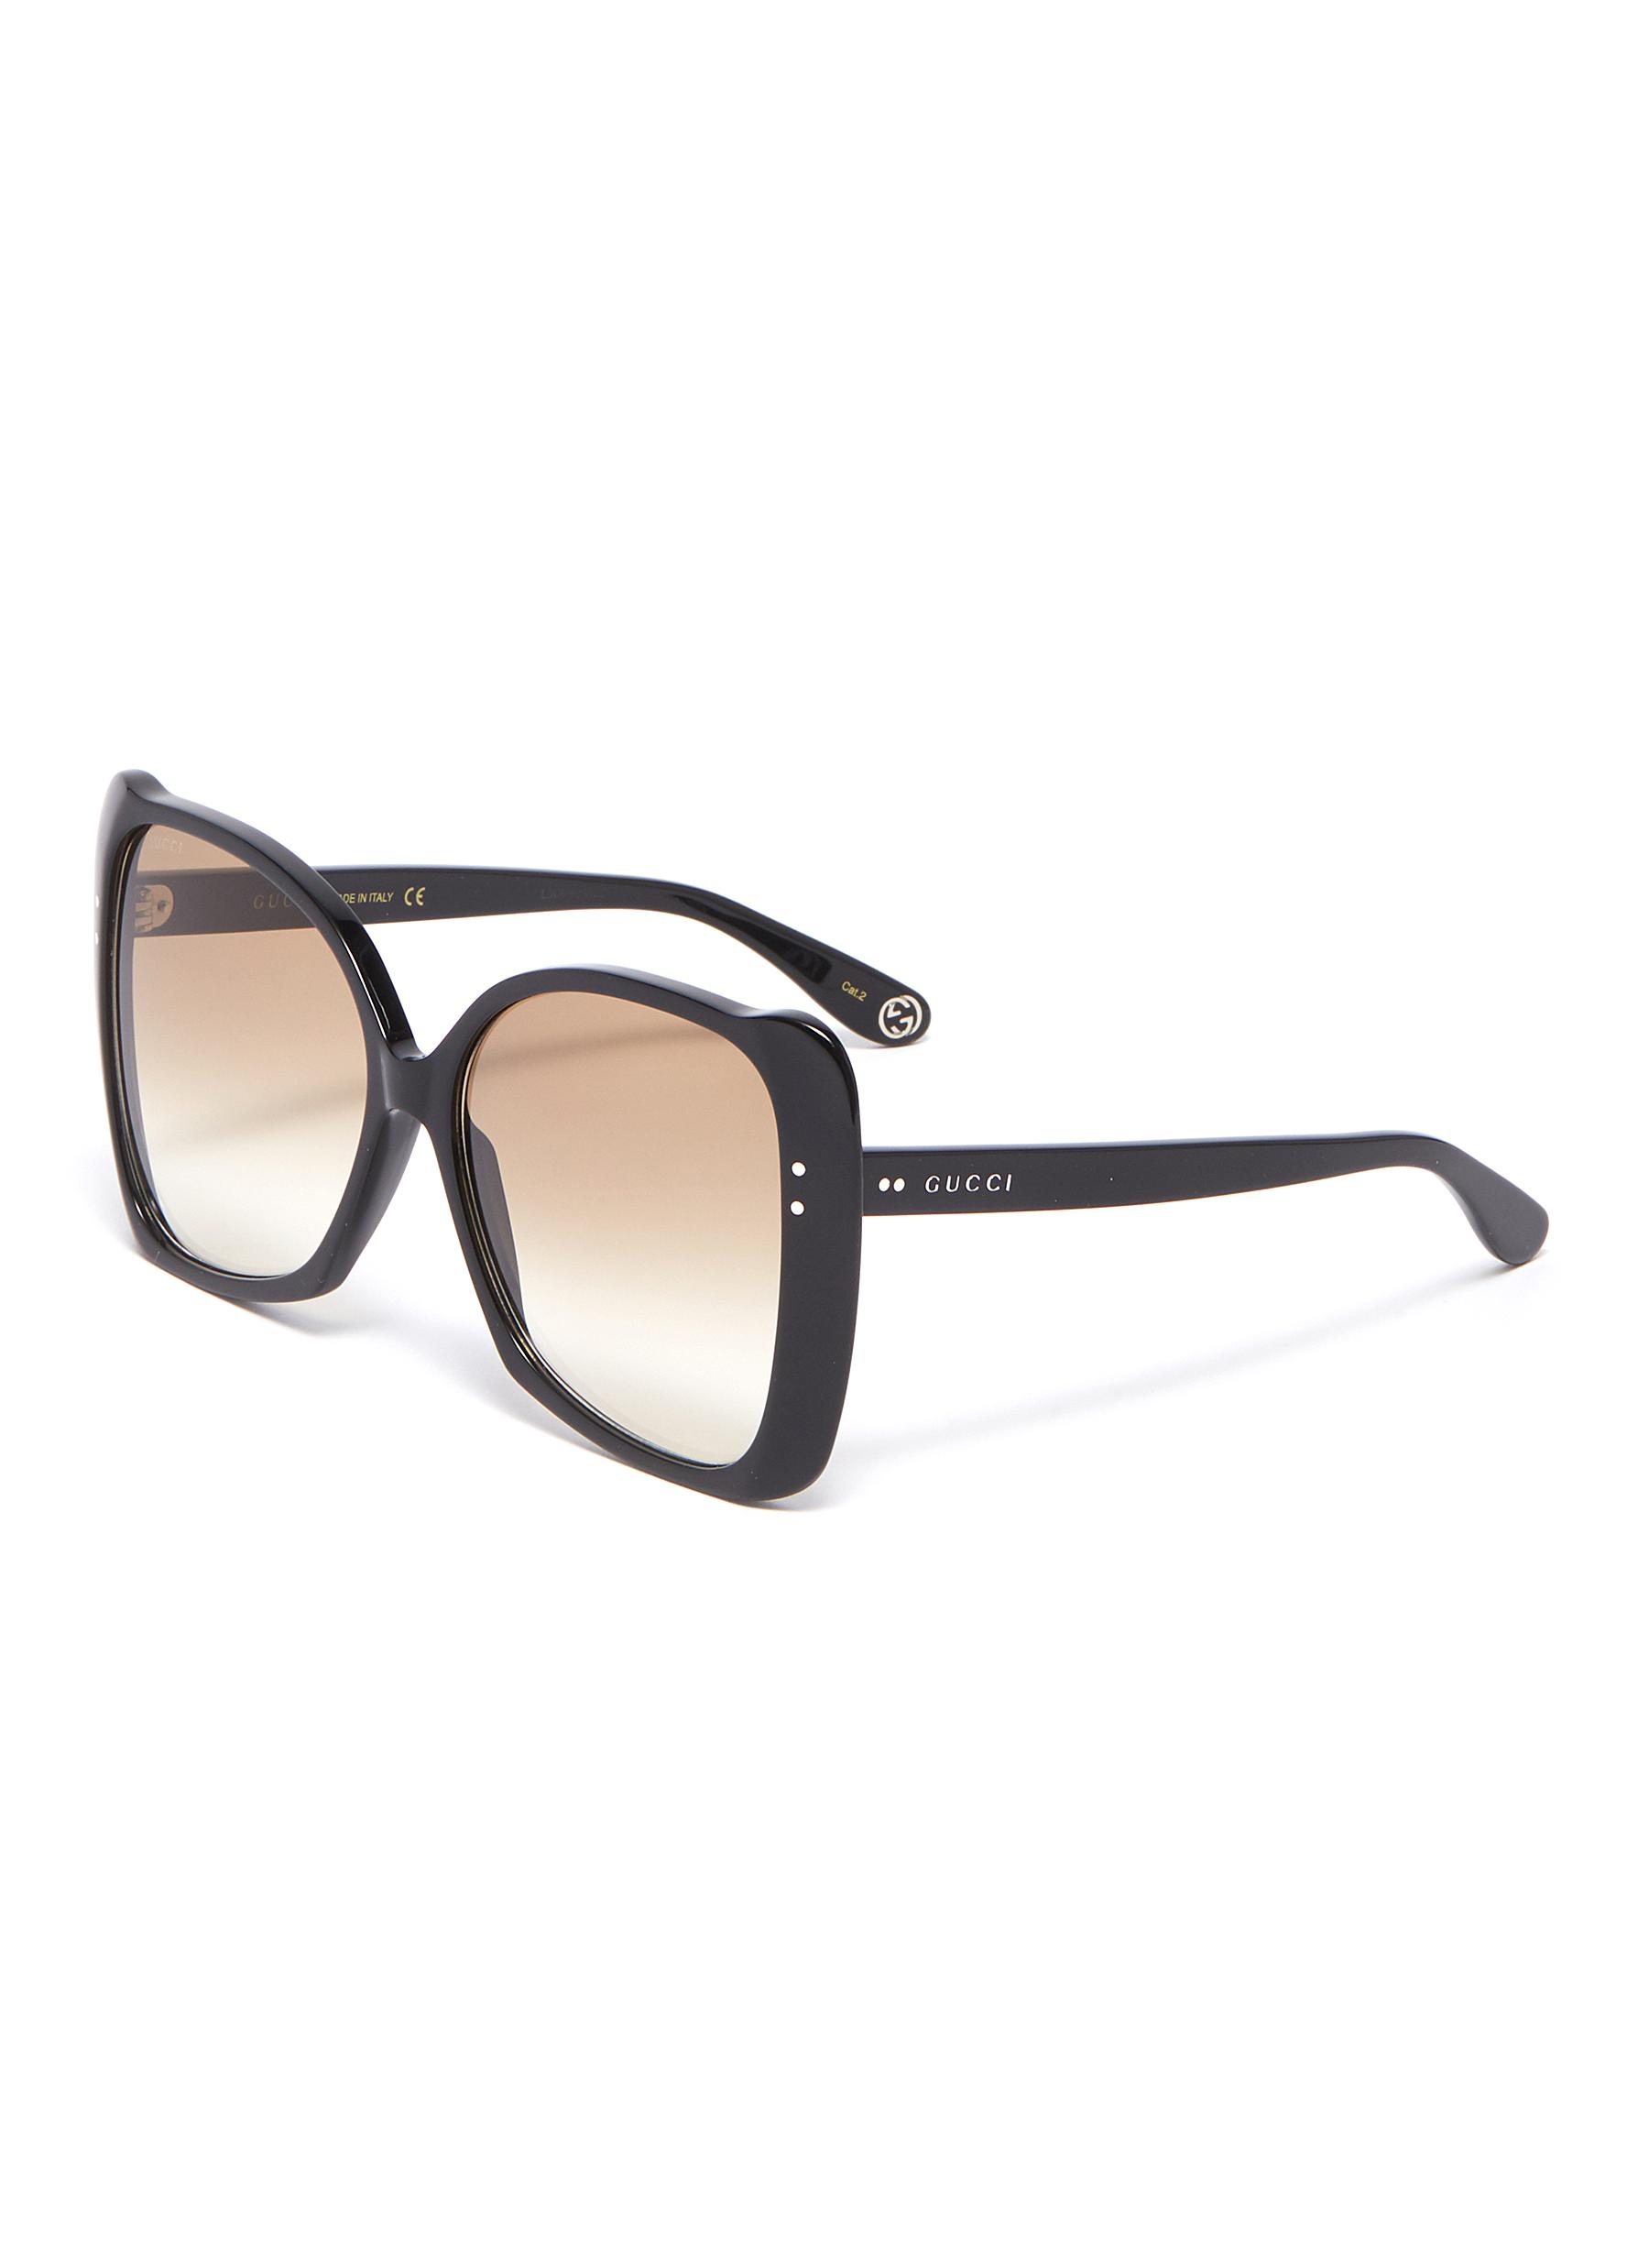 2c870b4fccb Gucci. Oversized acetate butterfly sunglasses